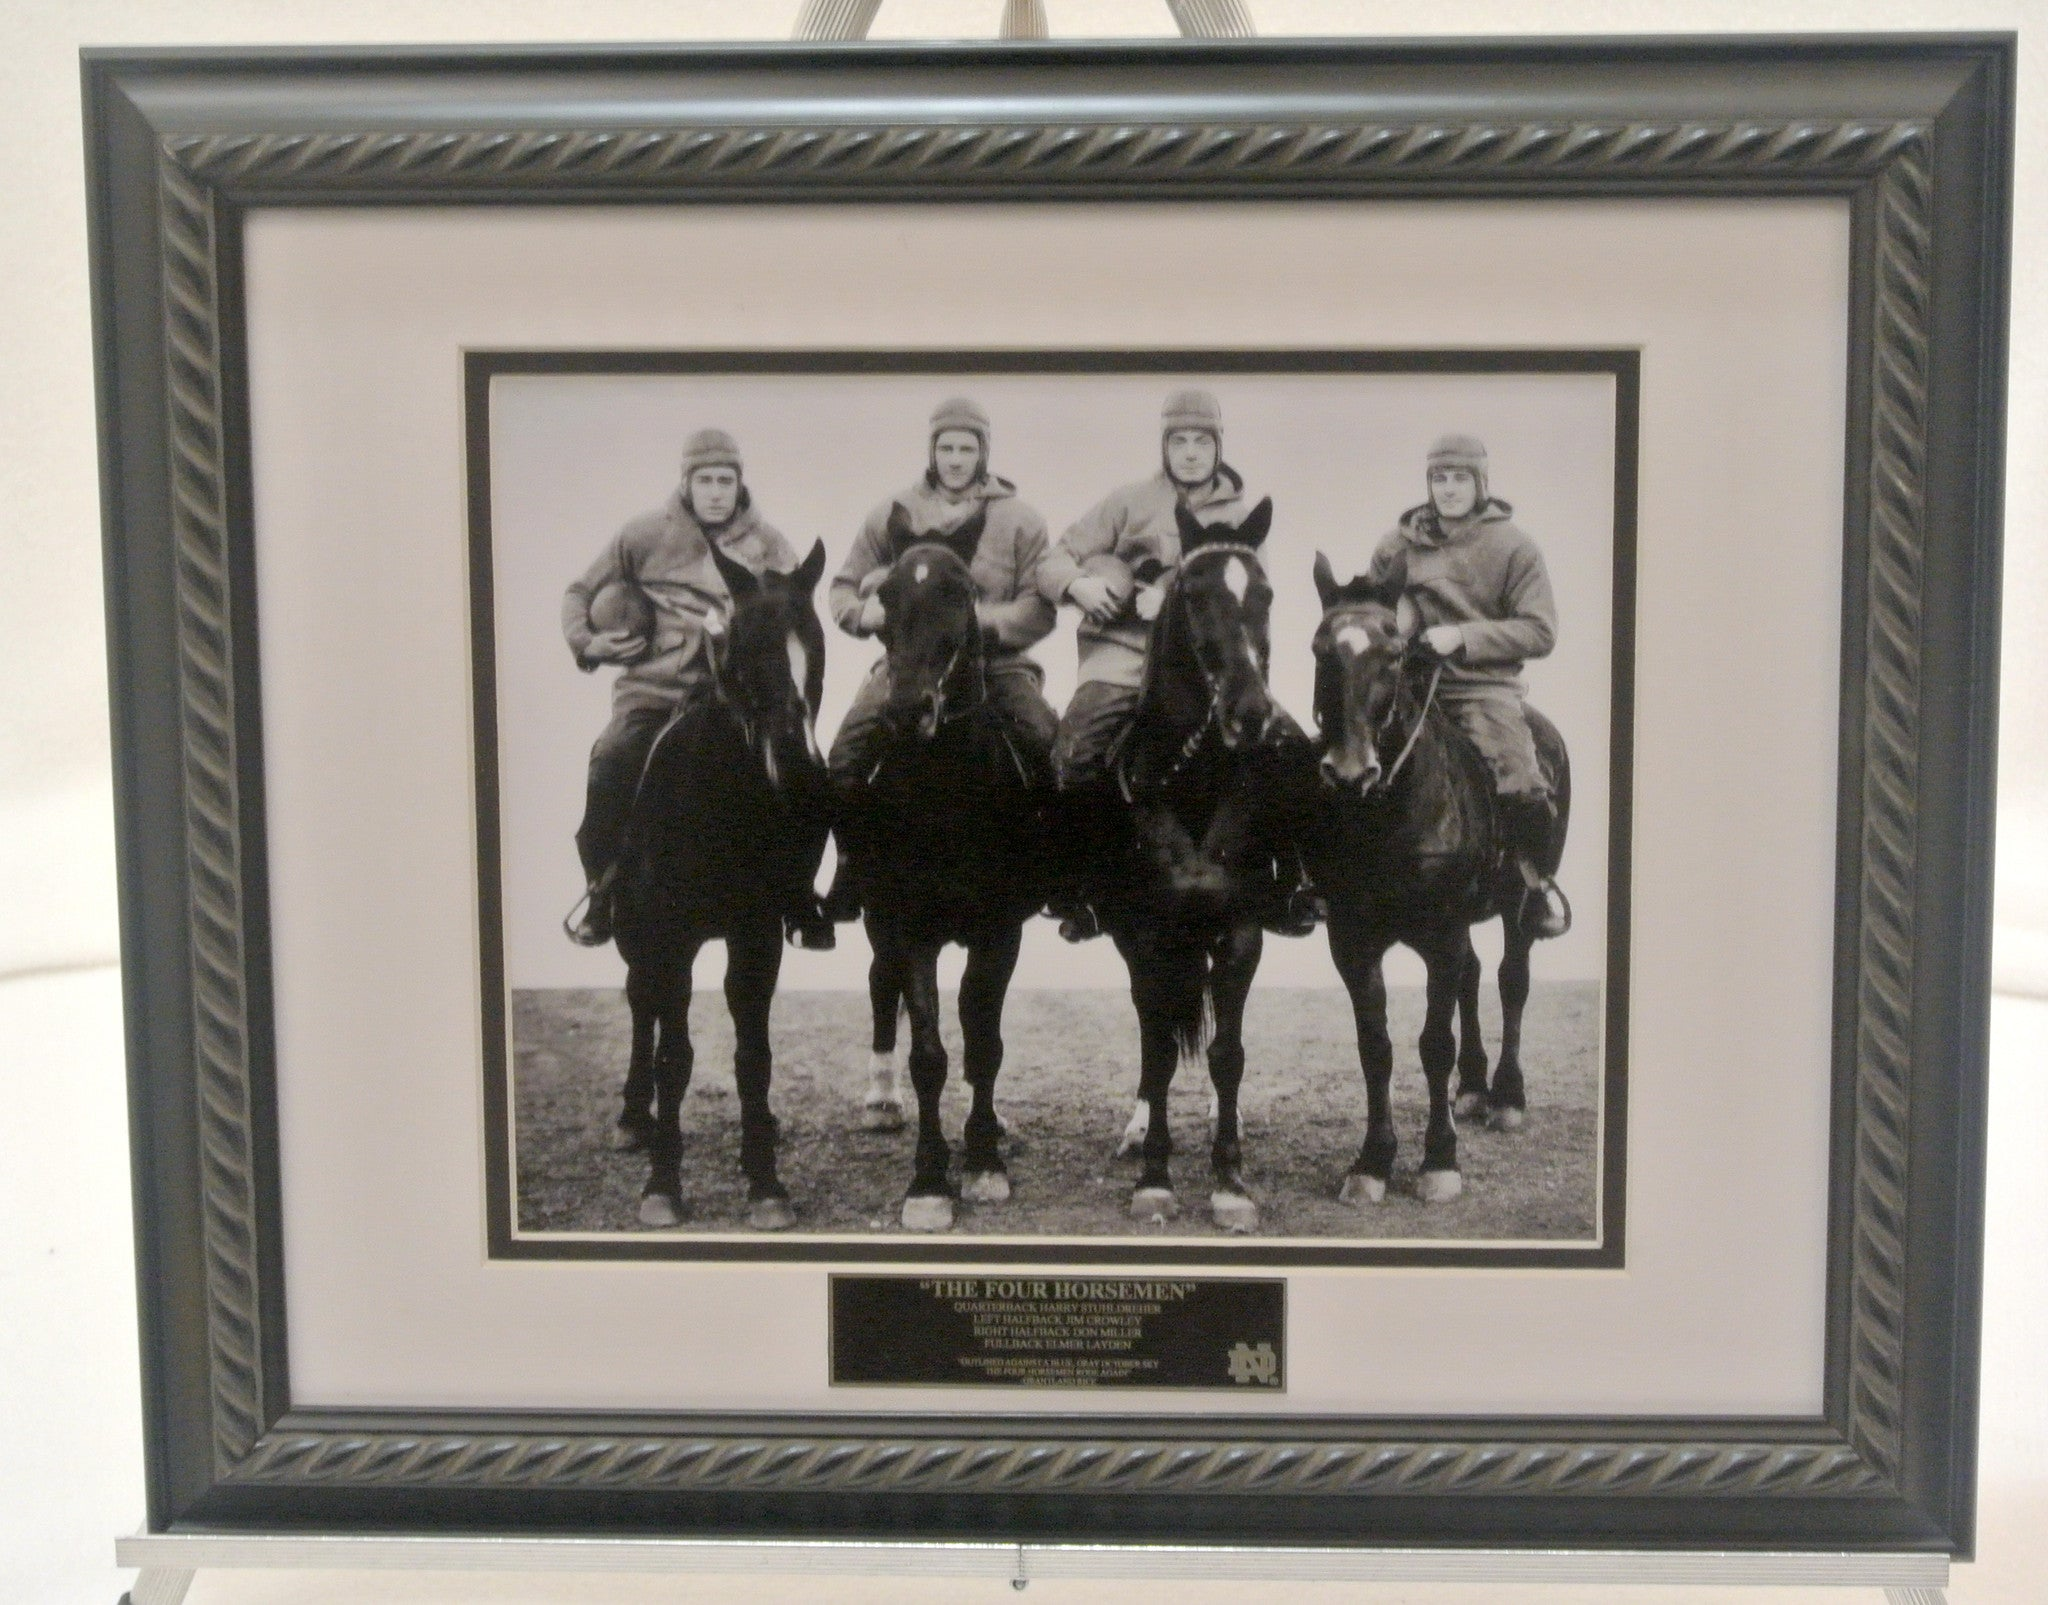 The Four Horsemen Framed 8x10 Photo